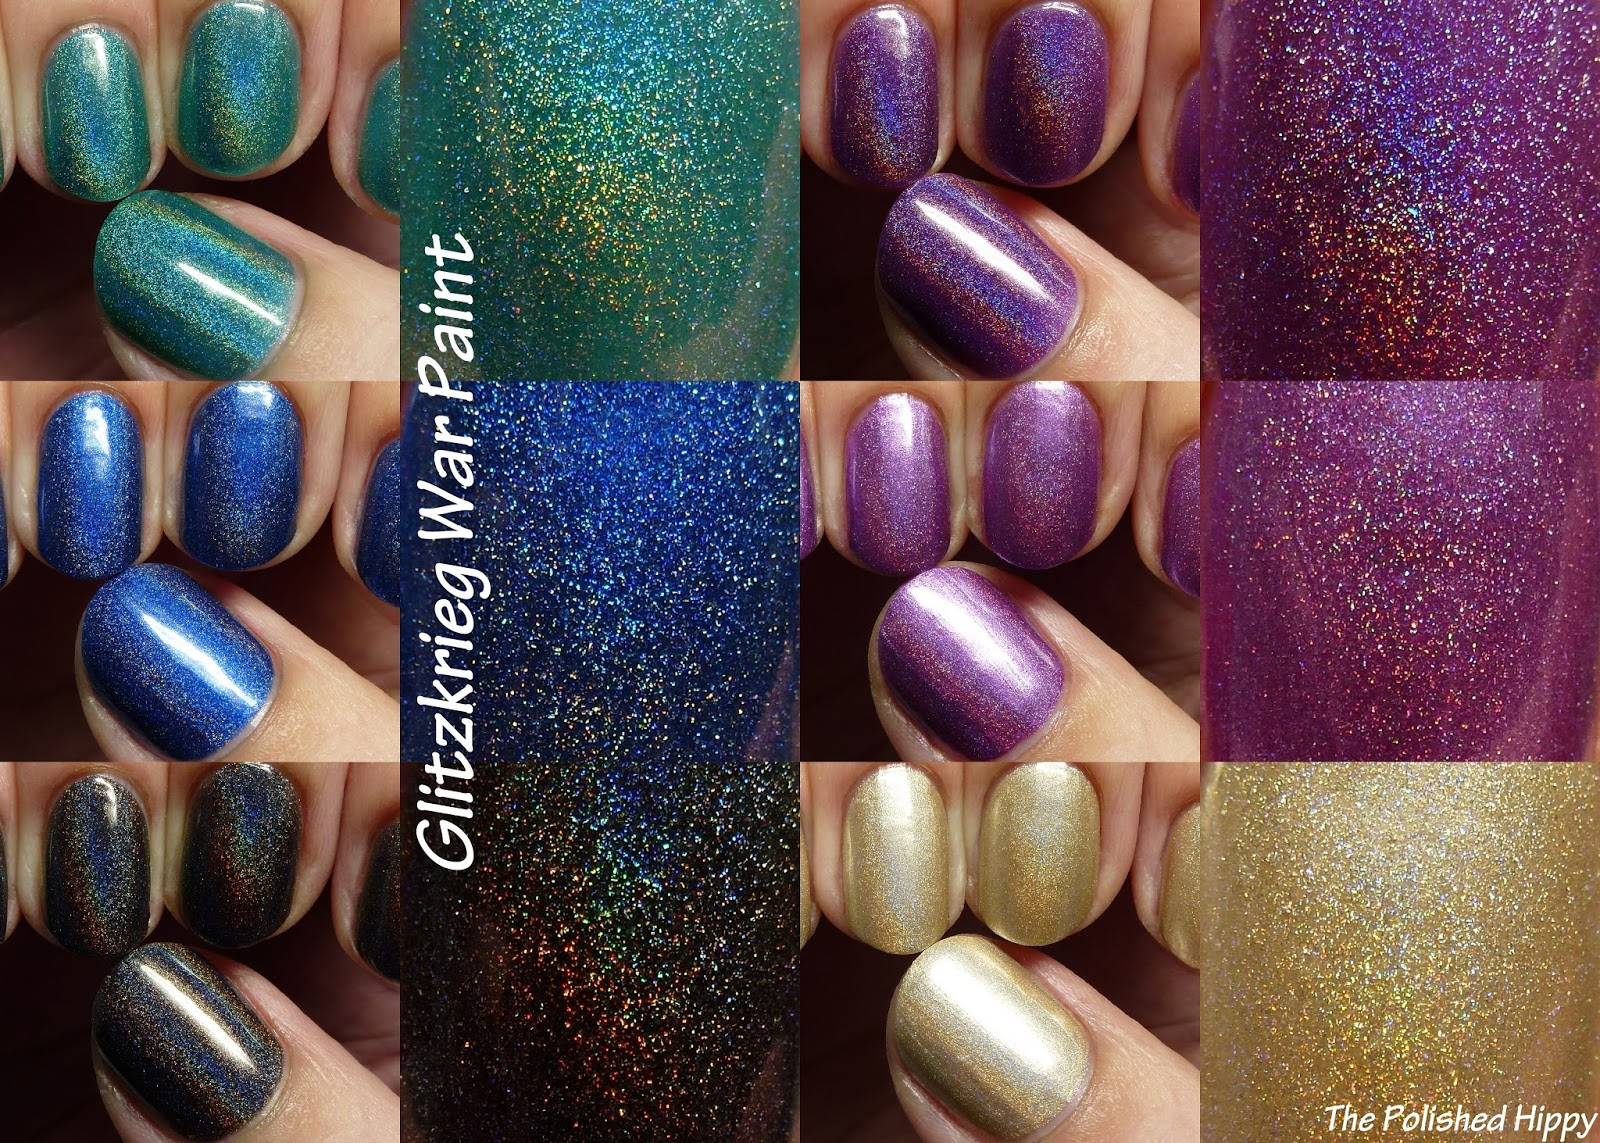 The Polished Hippy: Glitzkrieg War Paint Holo-Back Girl swatches